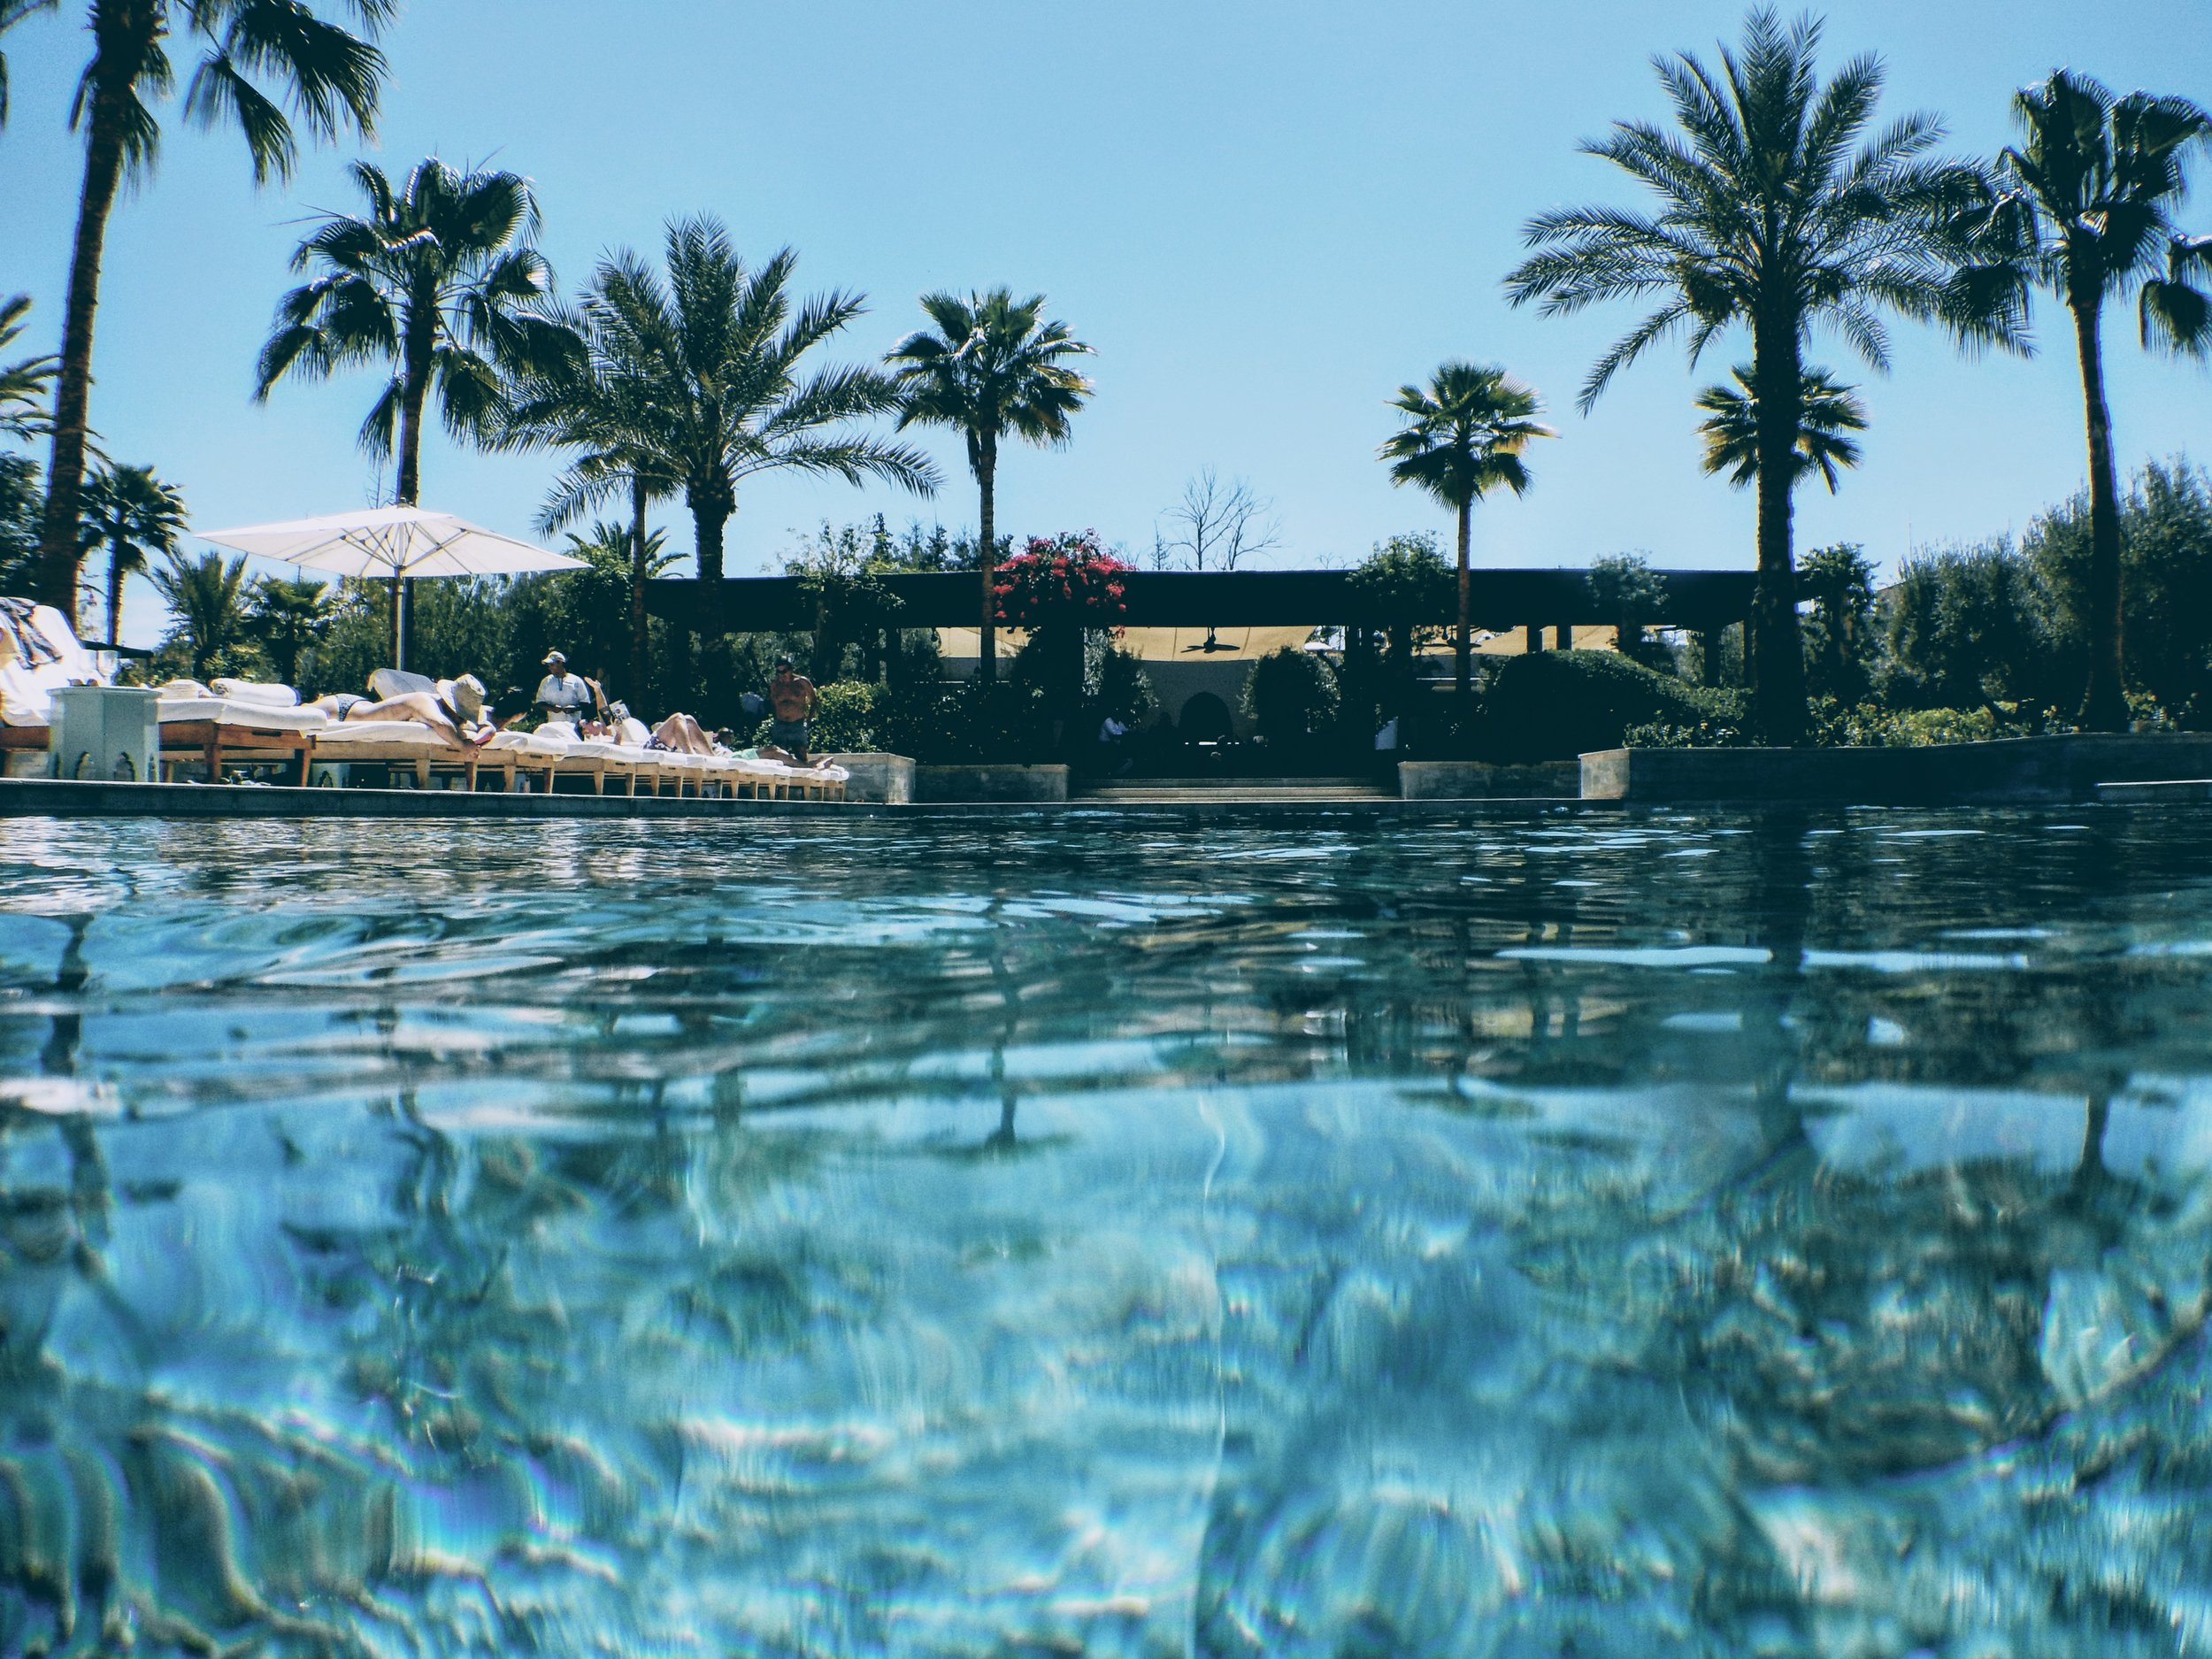 One of the swimming pools at the Four Seasons